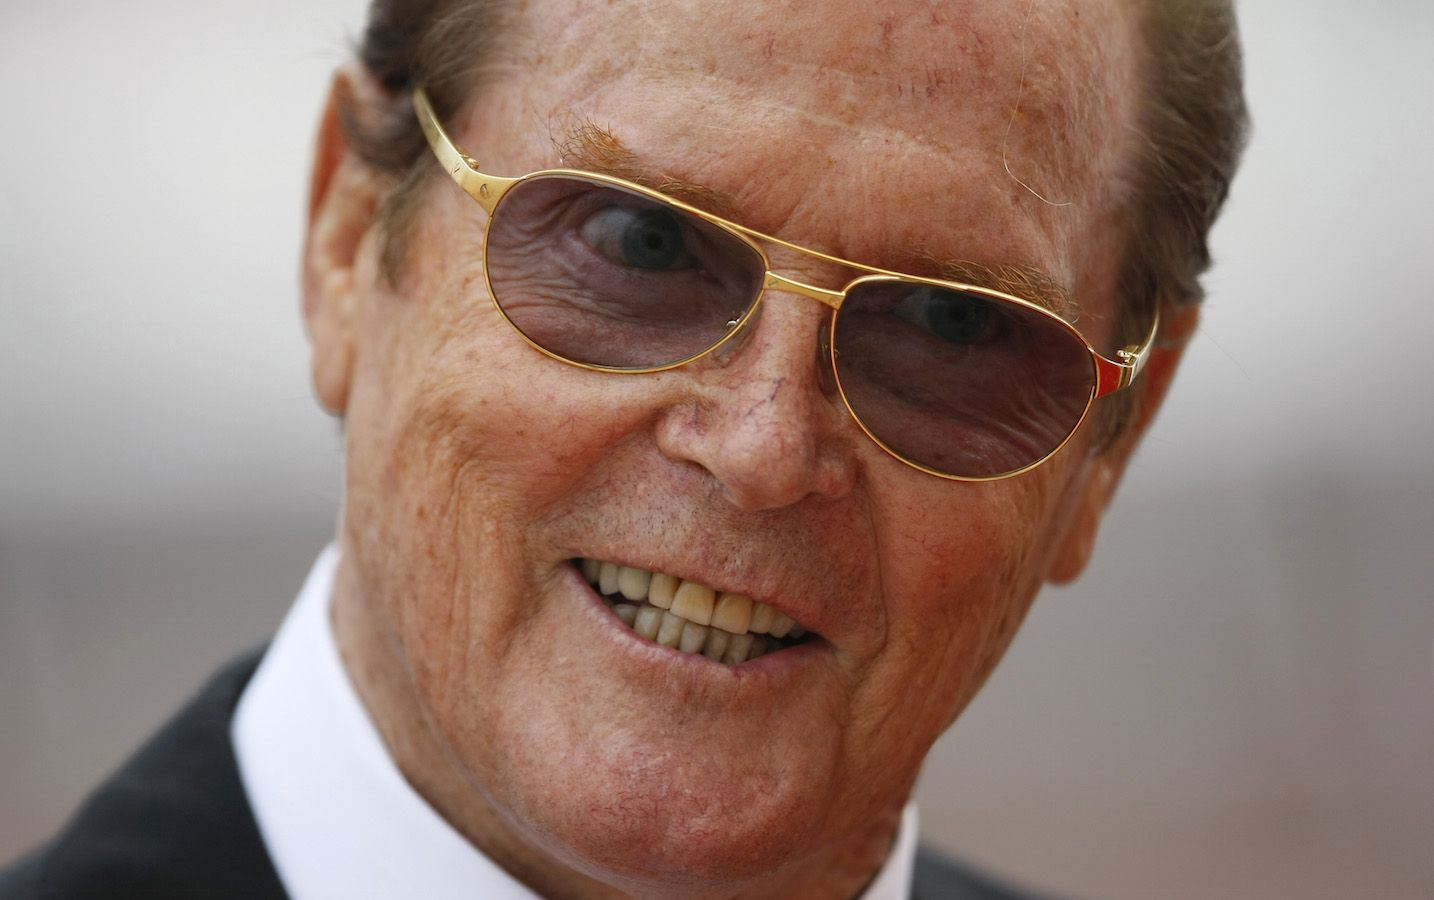 British actor Sir Roger Moore arrives at the Place du Palais to attend the religious wedding ceremony for Monaco's Prince Albert II and Princess Charlene at the Palace in Monaco July 2, 2011. REUTERS/Michel Spingler/Pool (MONACO - TAGS: ROYALS ENTERTAINMENT HEADSHOT) (MONACO ROYAL WEDDING) - RTR2ODYB